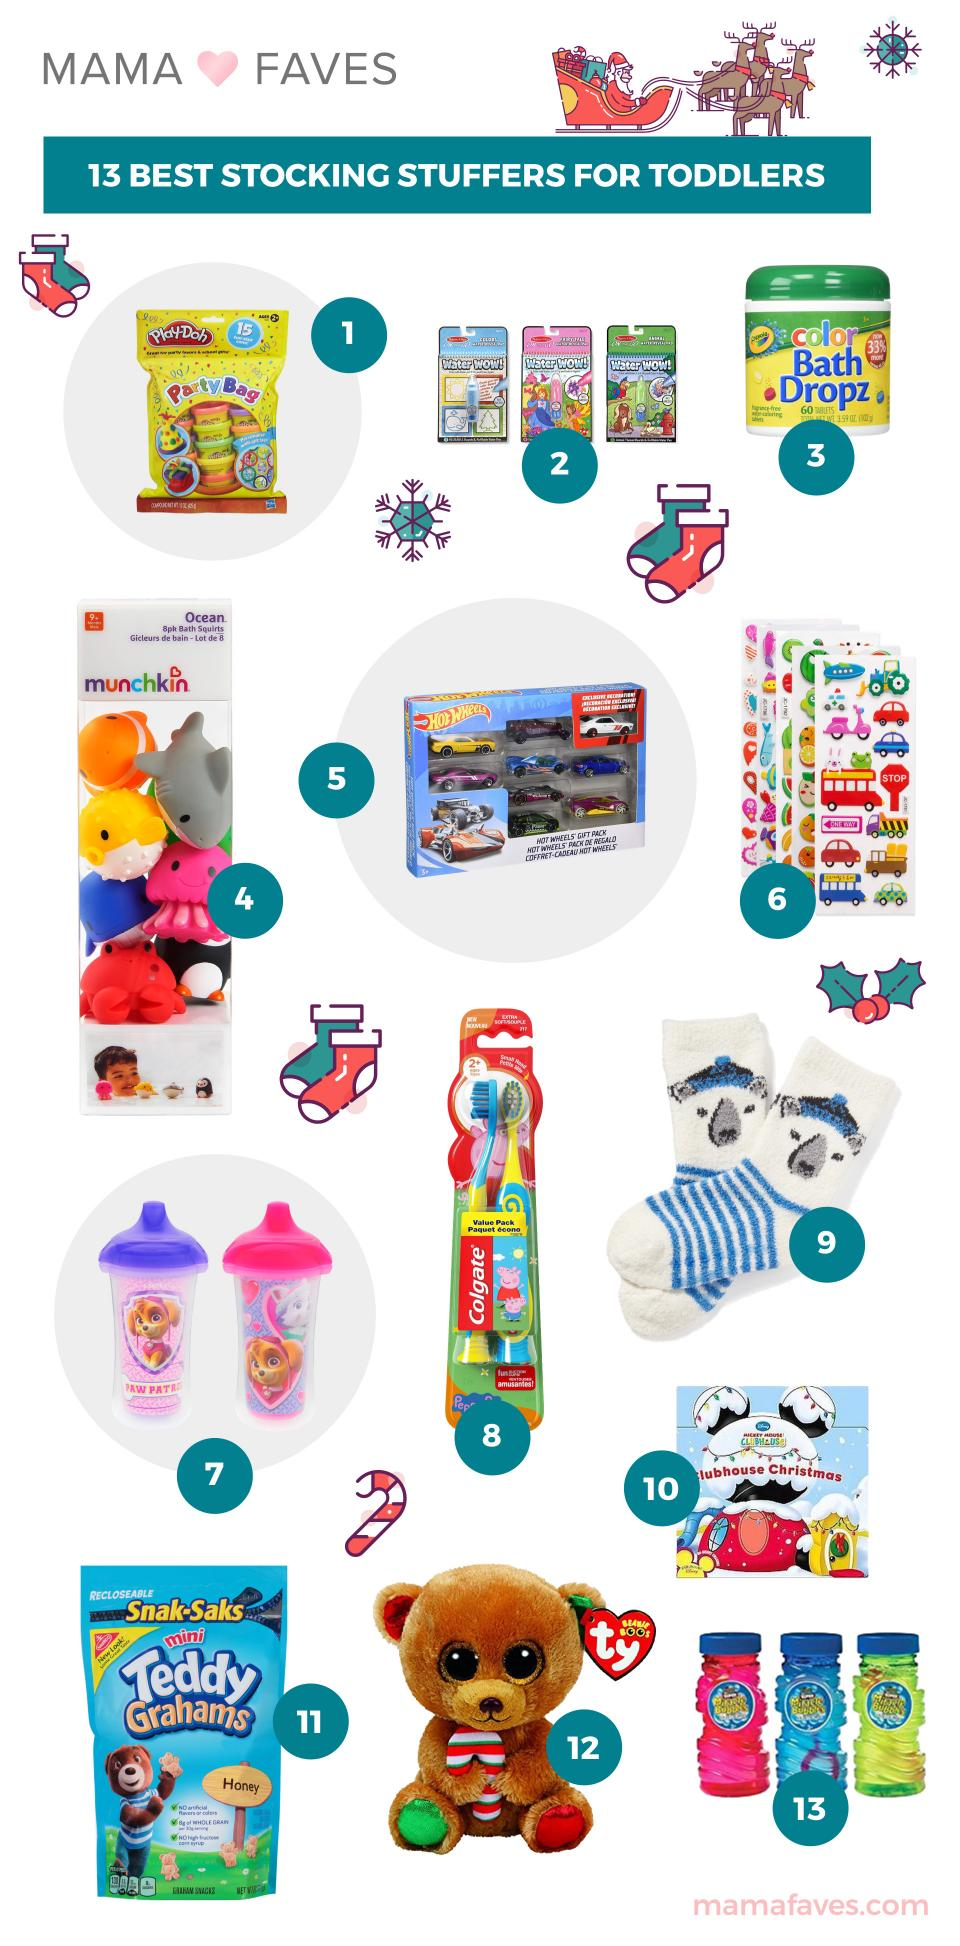 13 Best Stocking Stuffers for Toddlers